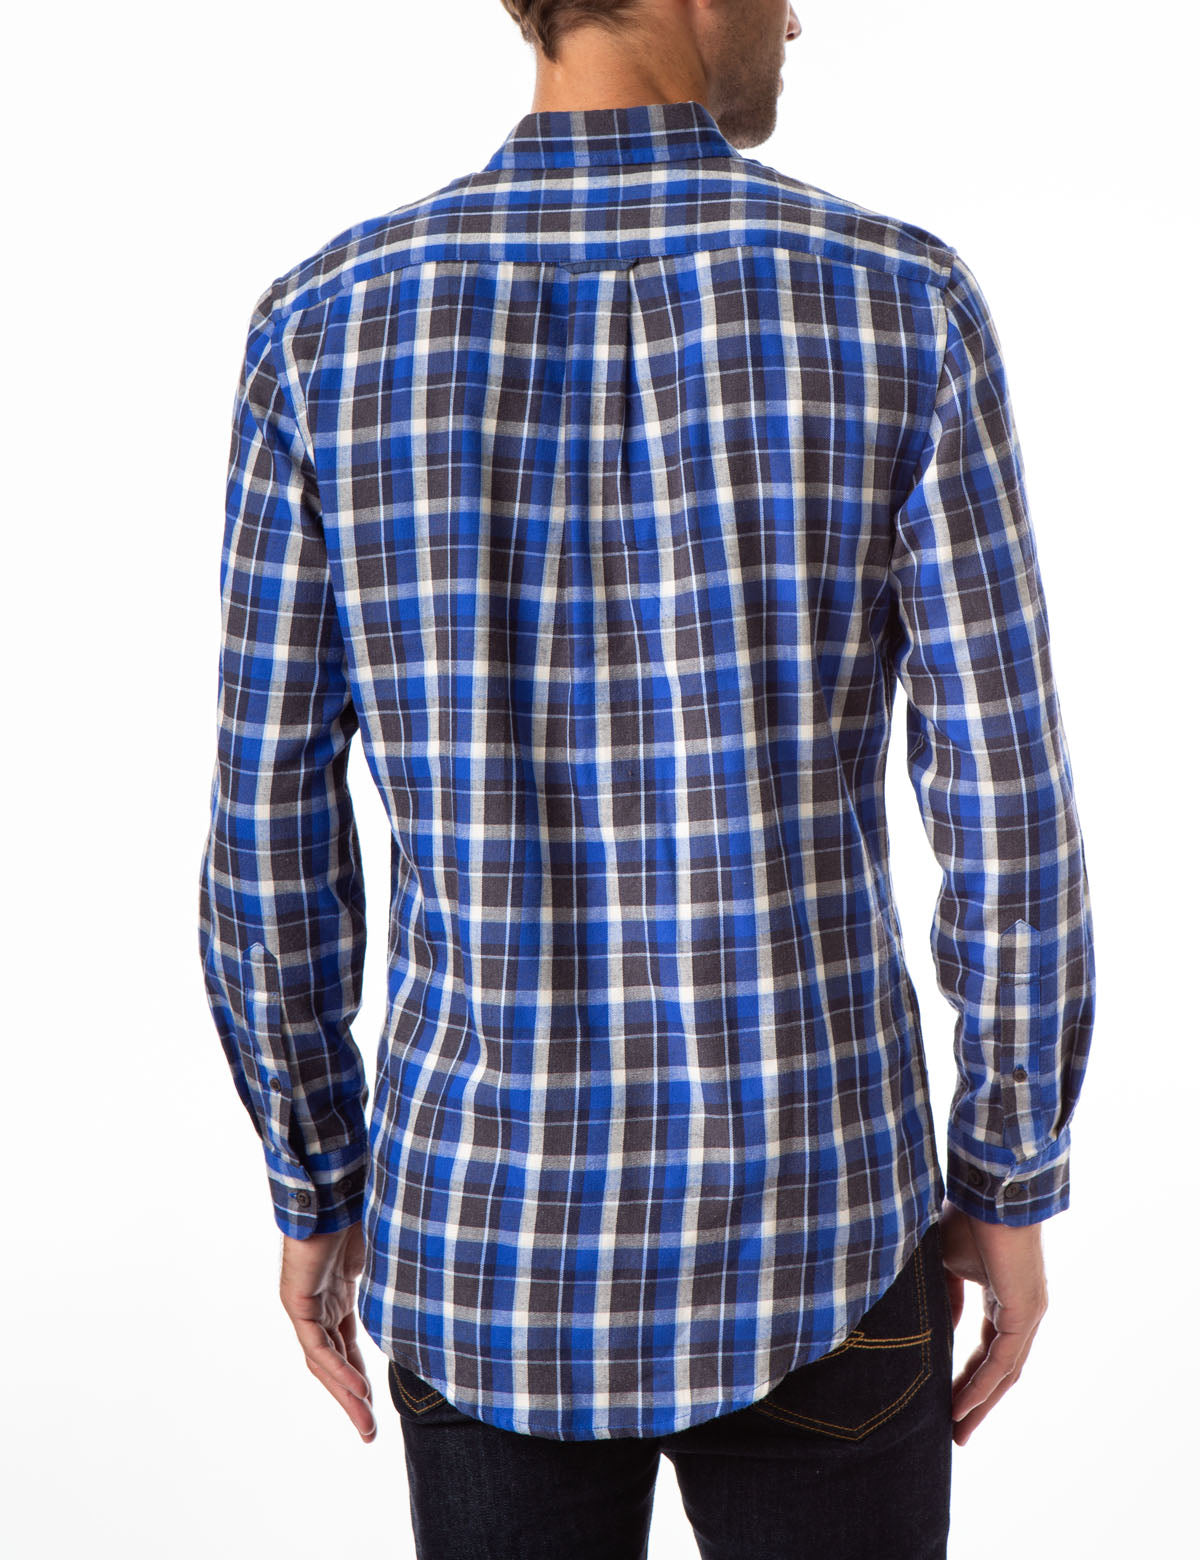 PLAID UTILITY SHIRT - U.S. Polo Assn.